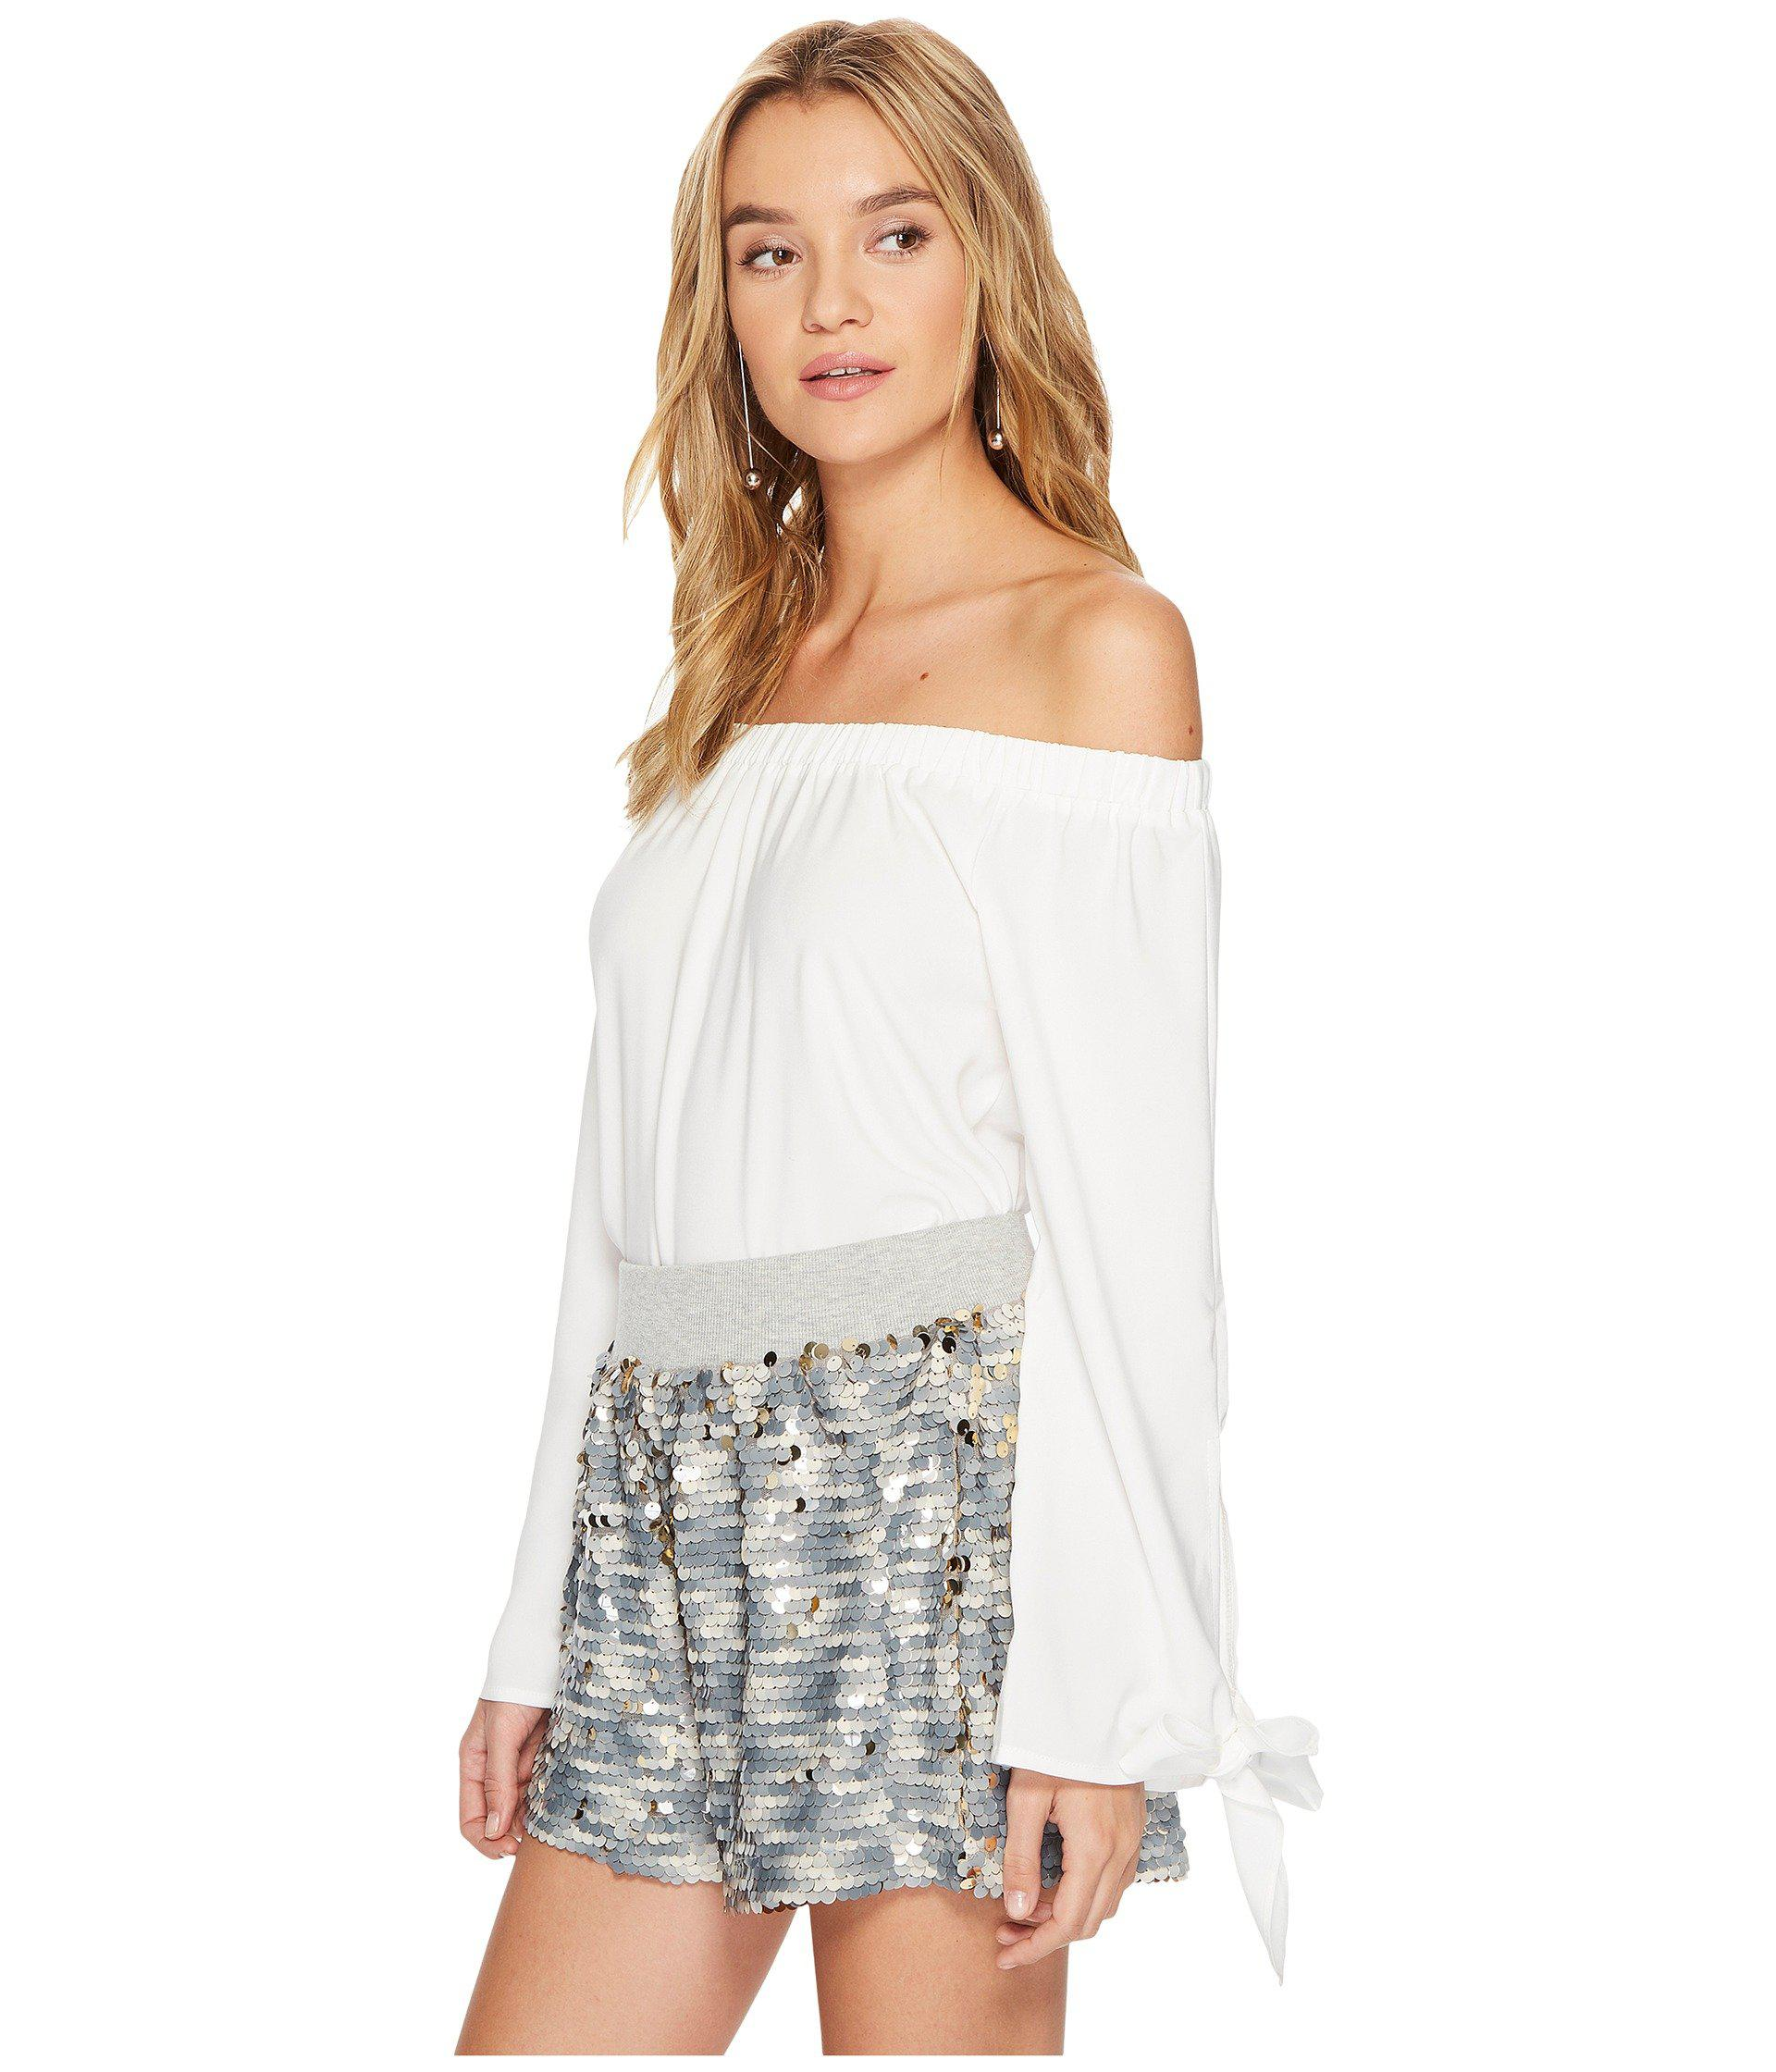 aae7e8b390cd7 Lyst - Bishop + Young Avery Off Shoulder Top in White - Save  56.45161290322581%